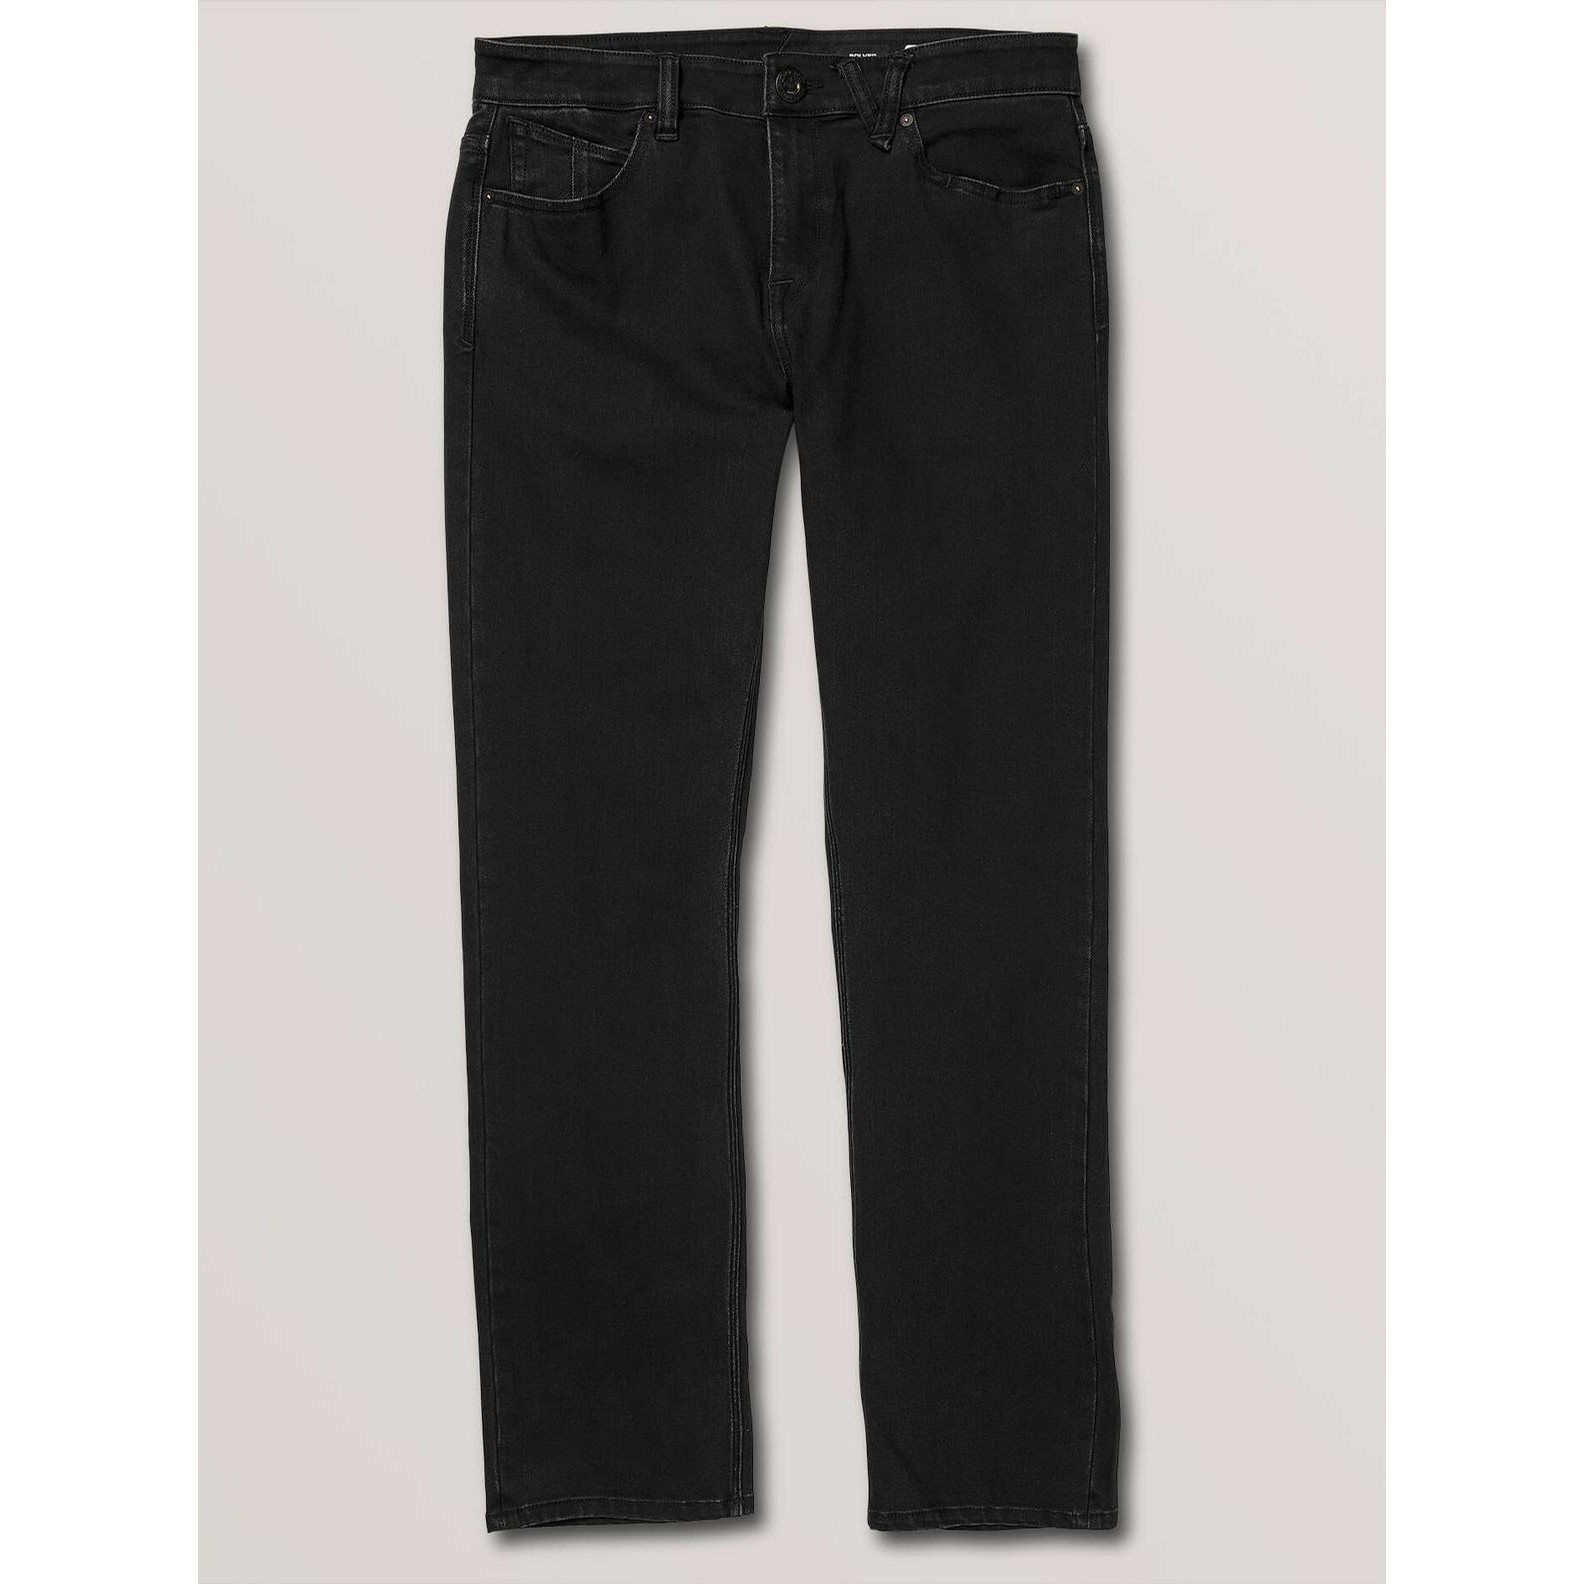 Solver Denim (Blackout)